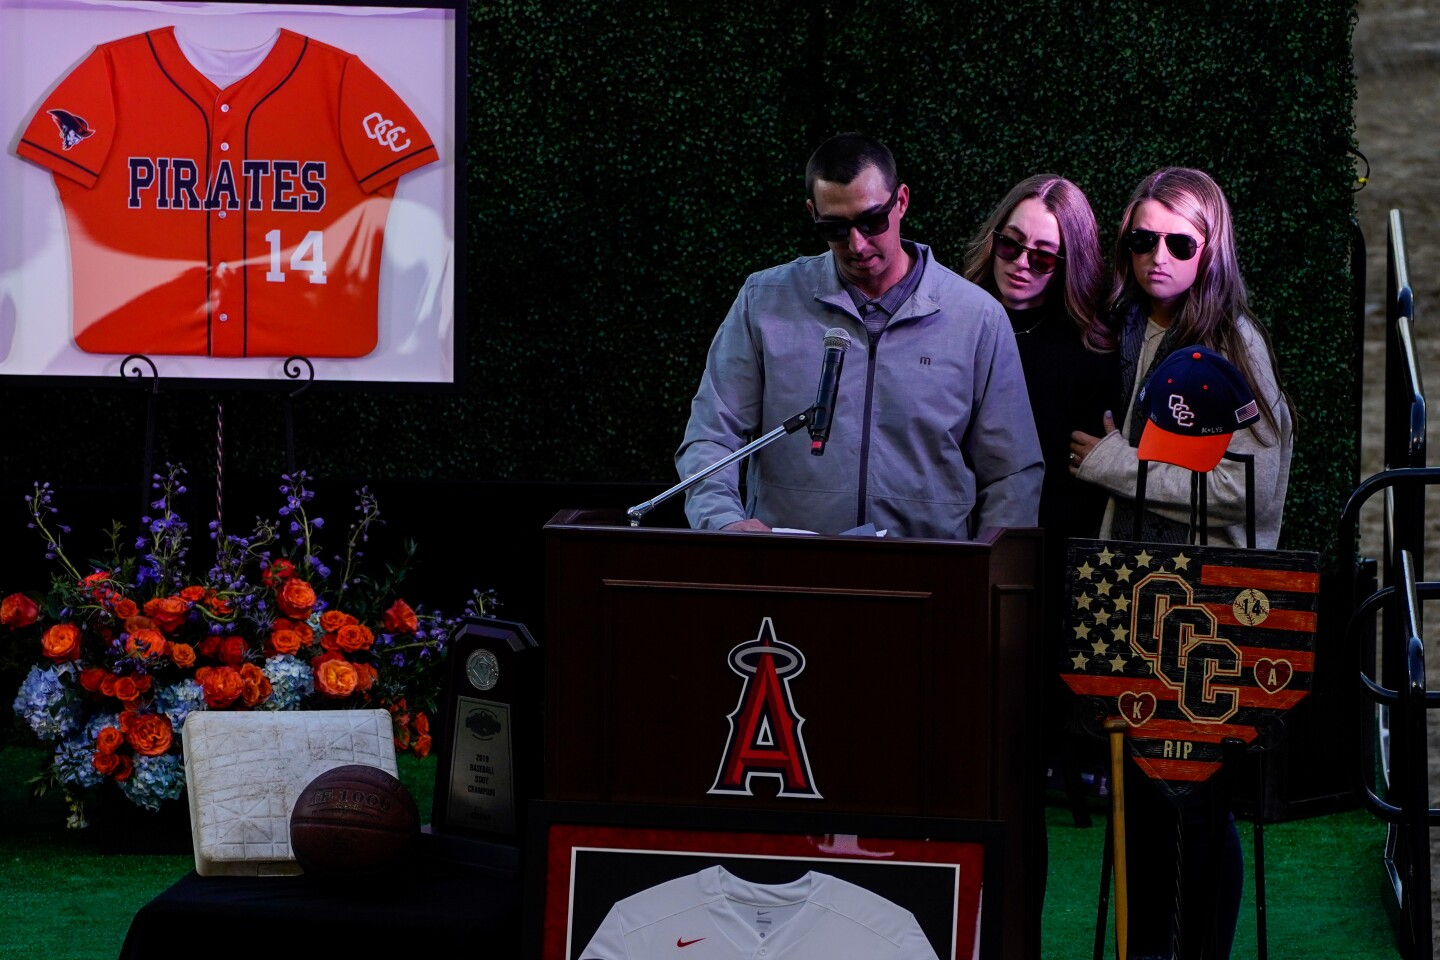 ANAHEIM, CALIF. - FEBRUARY 10: JJ Altobelli, accompanied by Lexi Altobelli and Carly Konigsfeld speaks during a celebration of life ceremony at Angel Stadium on Monday, Feb. 10, 2020 in Anaheim, Calif. to honor the lives of John, Keri and Alyssa Altobelli, who were among the nine killed in a helicopter crash that also claimed the lives of Lakers legend Kobe Bryant and his daughter Gianna. (Kent Nishimura / Los Angeles Times)